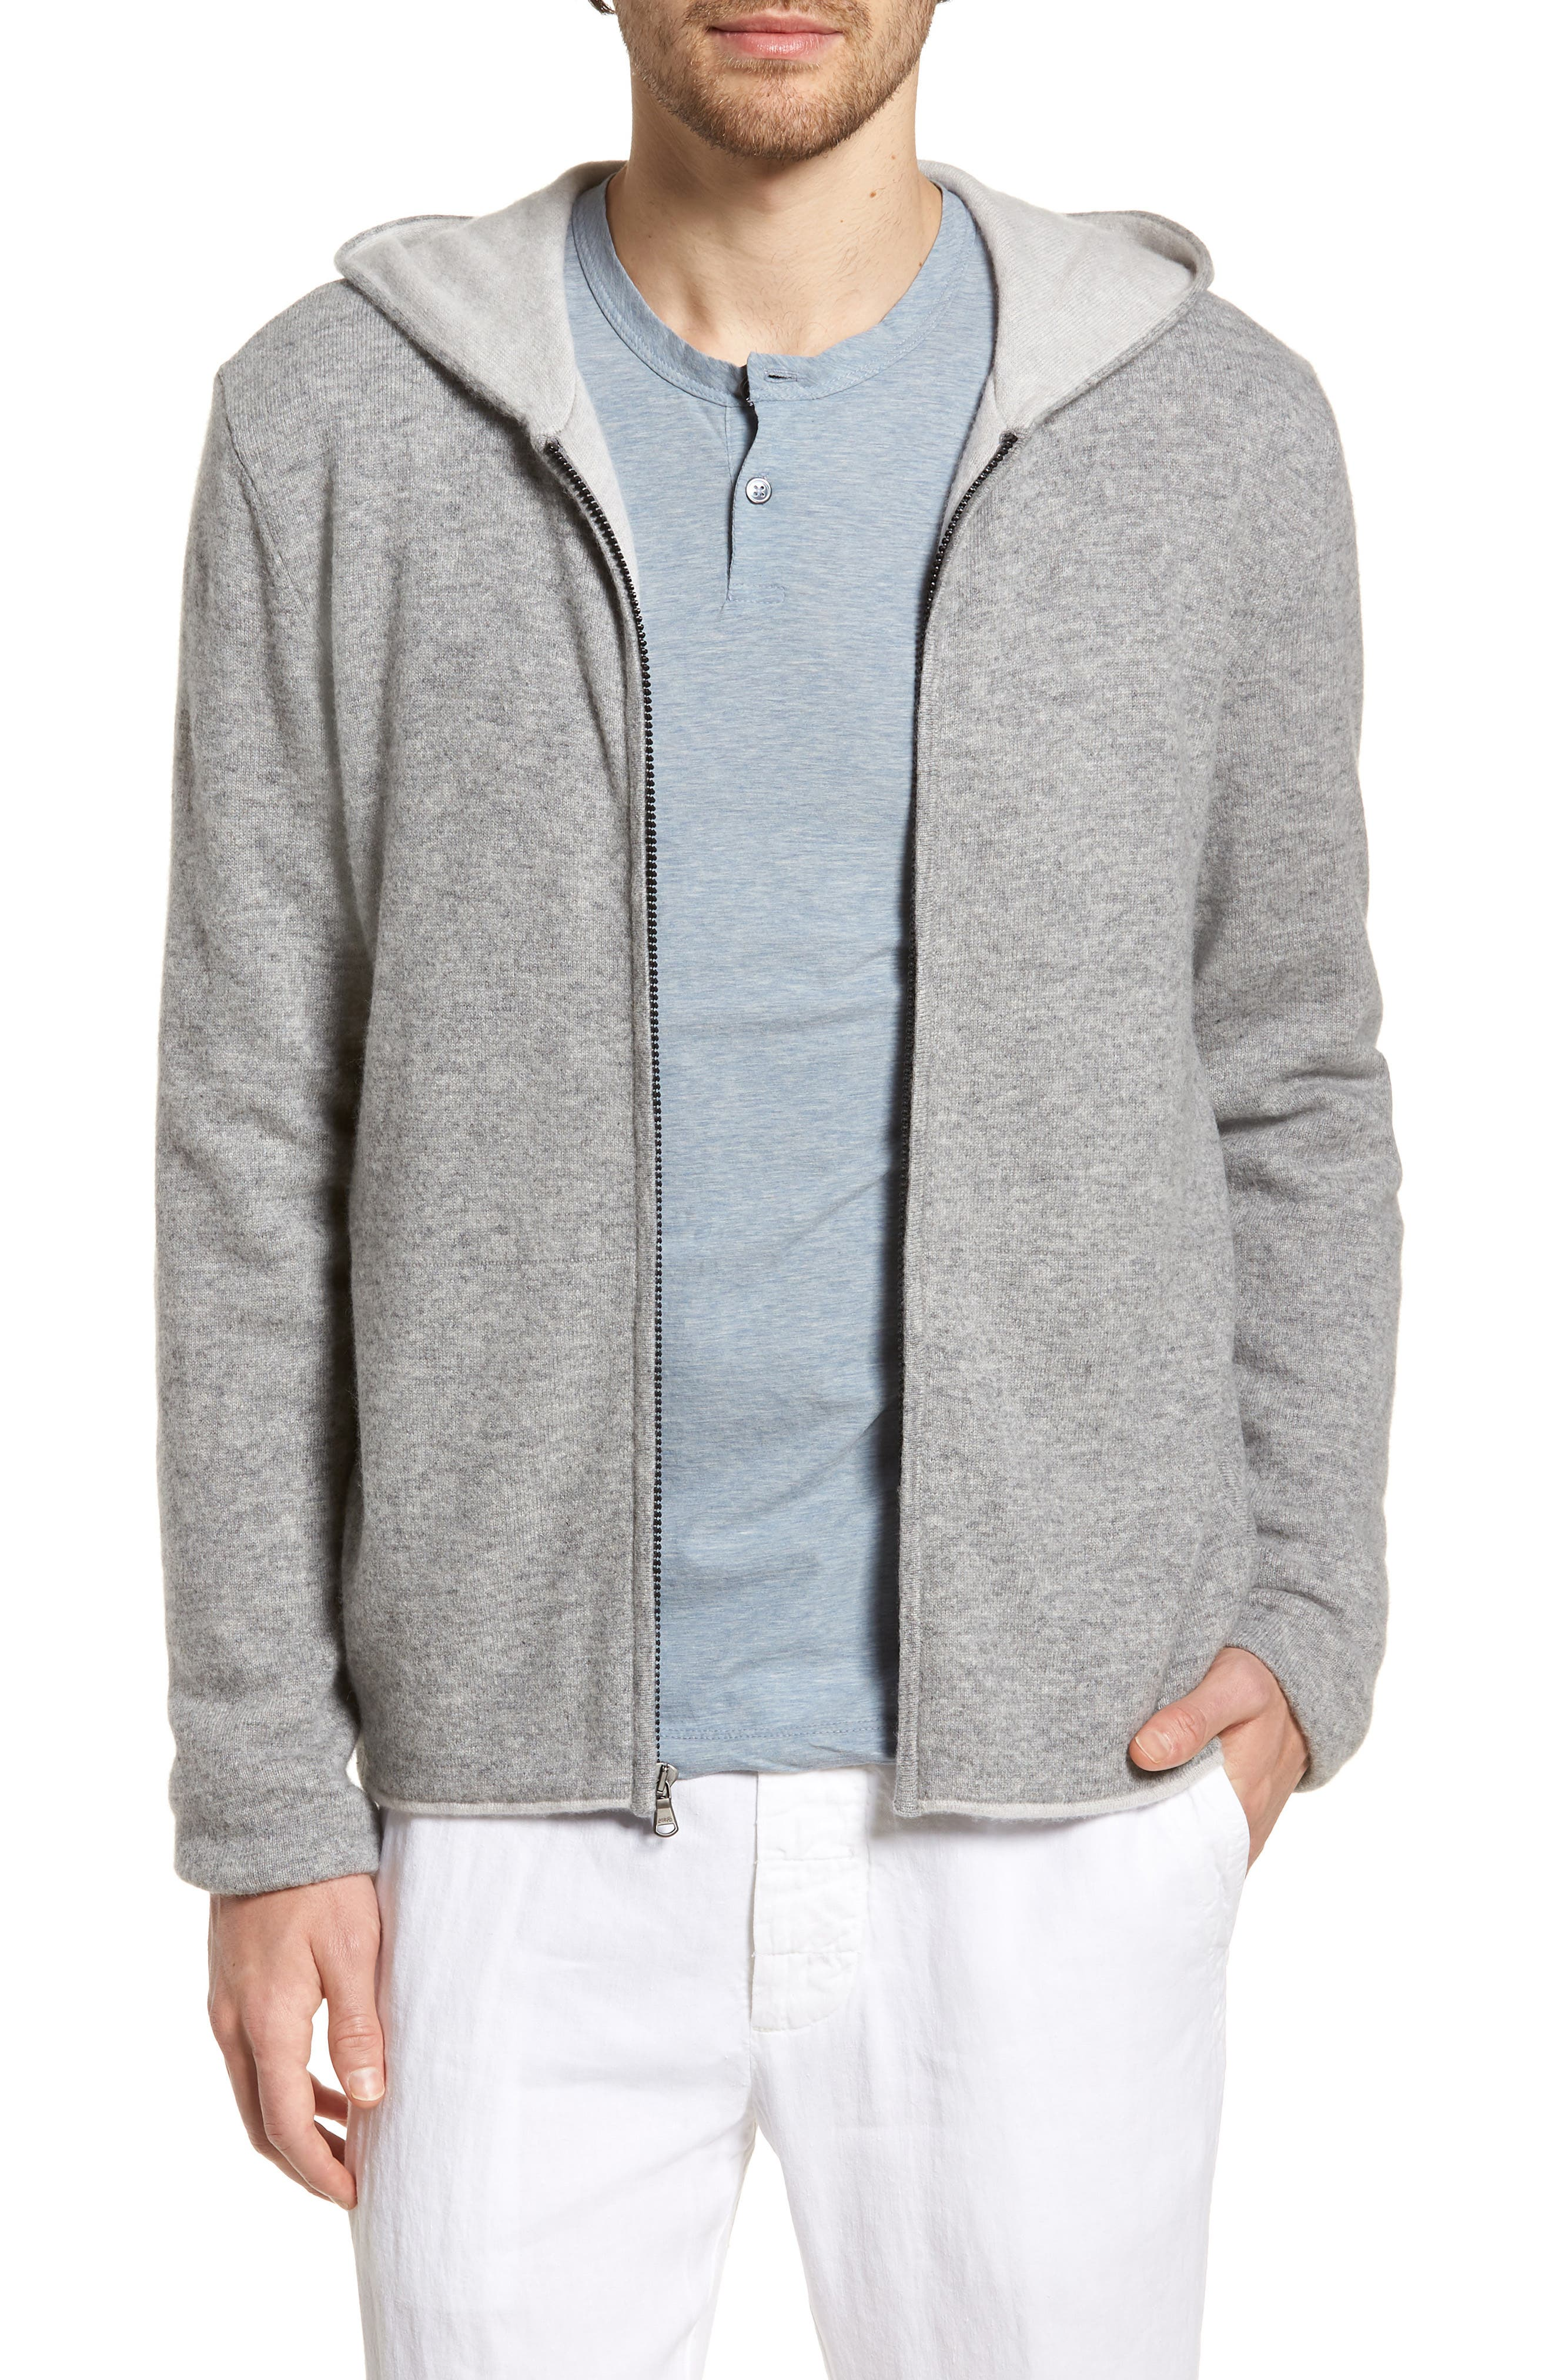 Cashmere Zip Hoodie,                         Main,                         color, Heather Grey/ Pearl